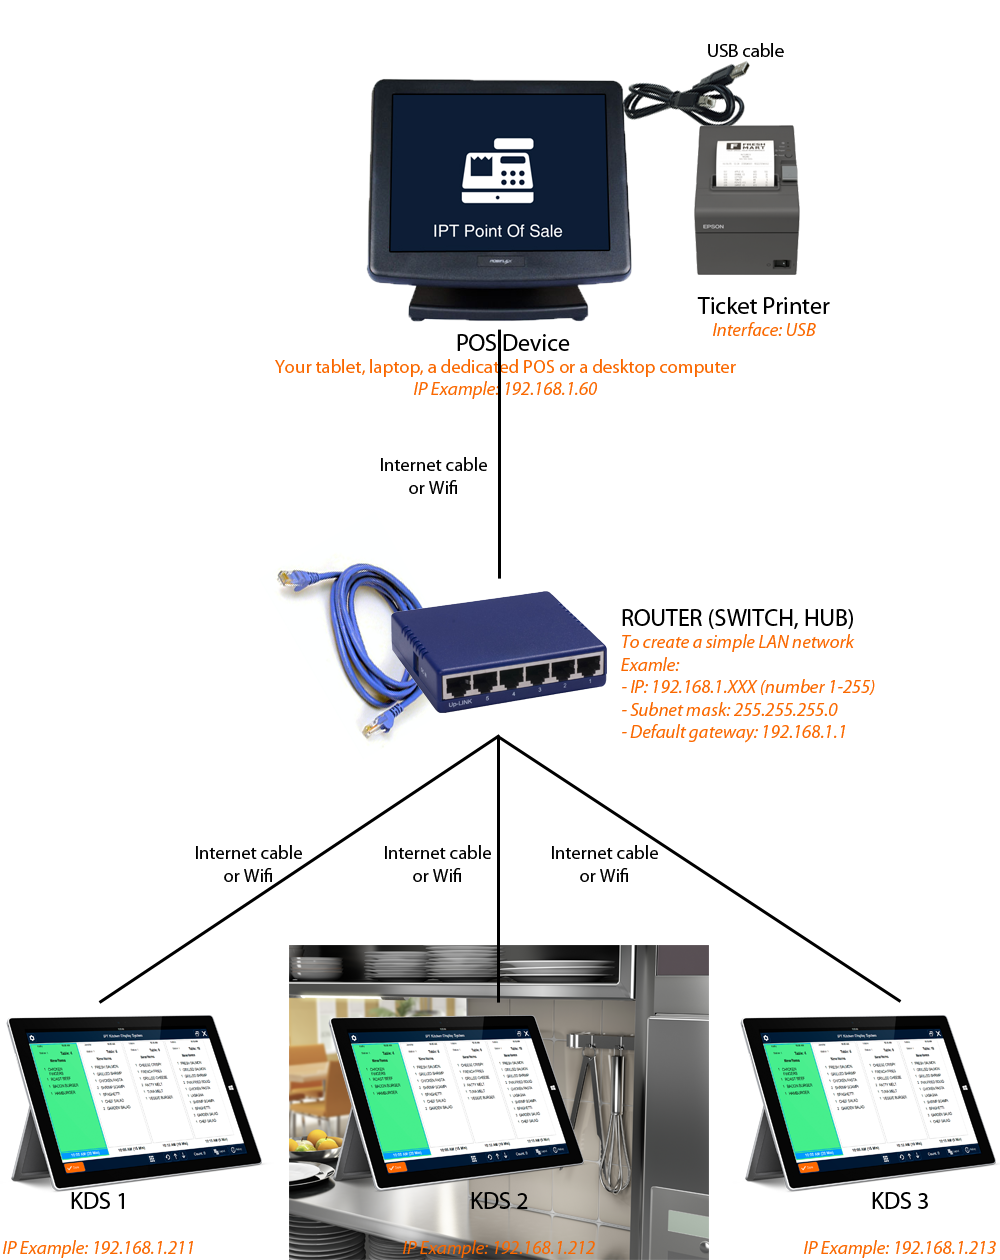 FAQ - How to send orders to IPT Kichen Display System